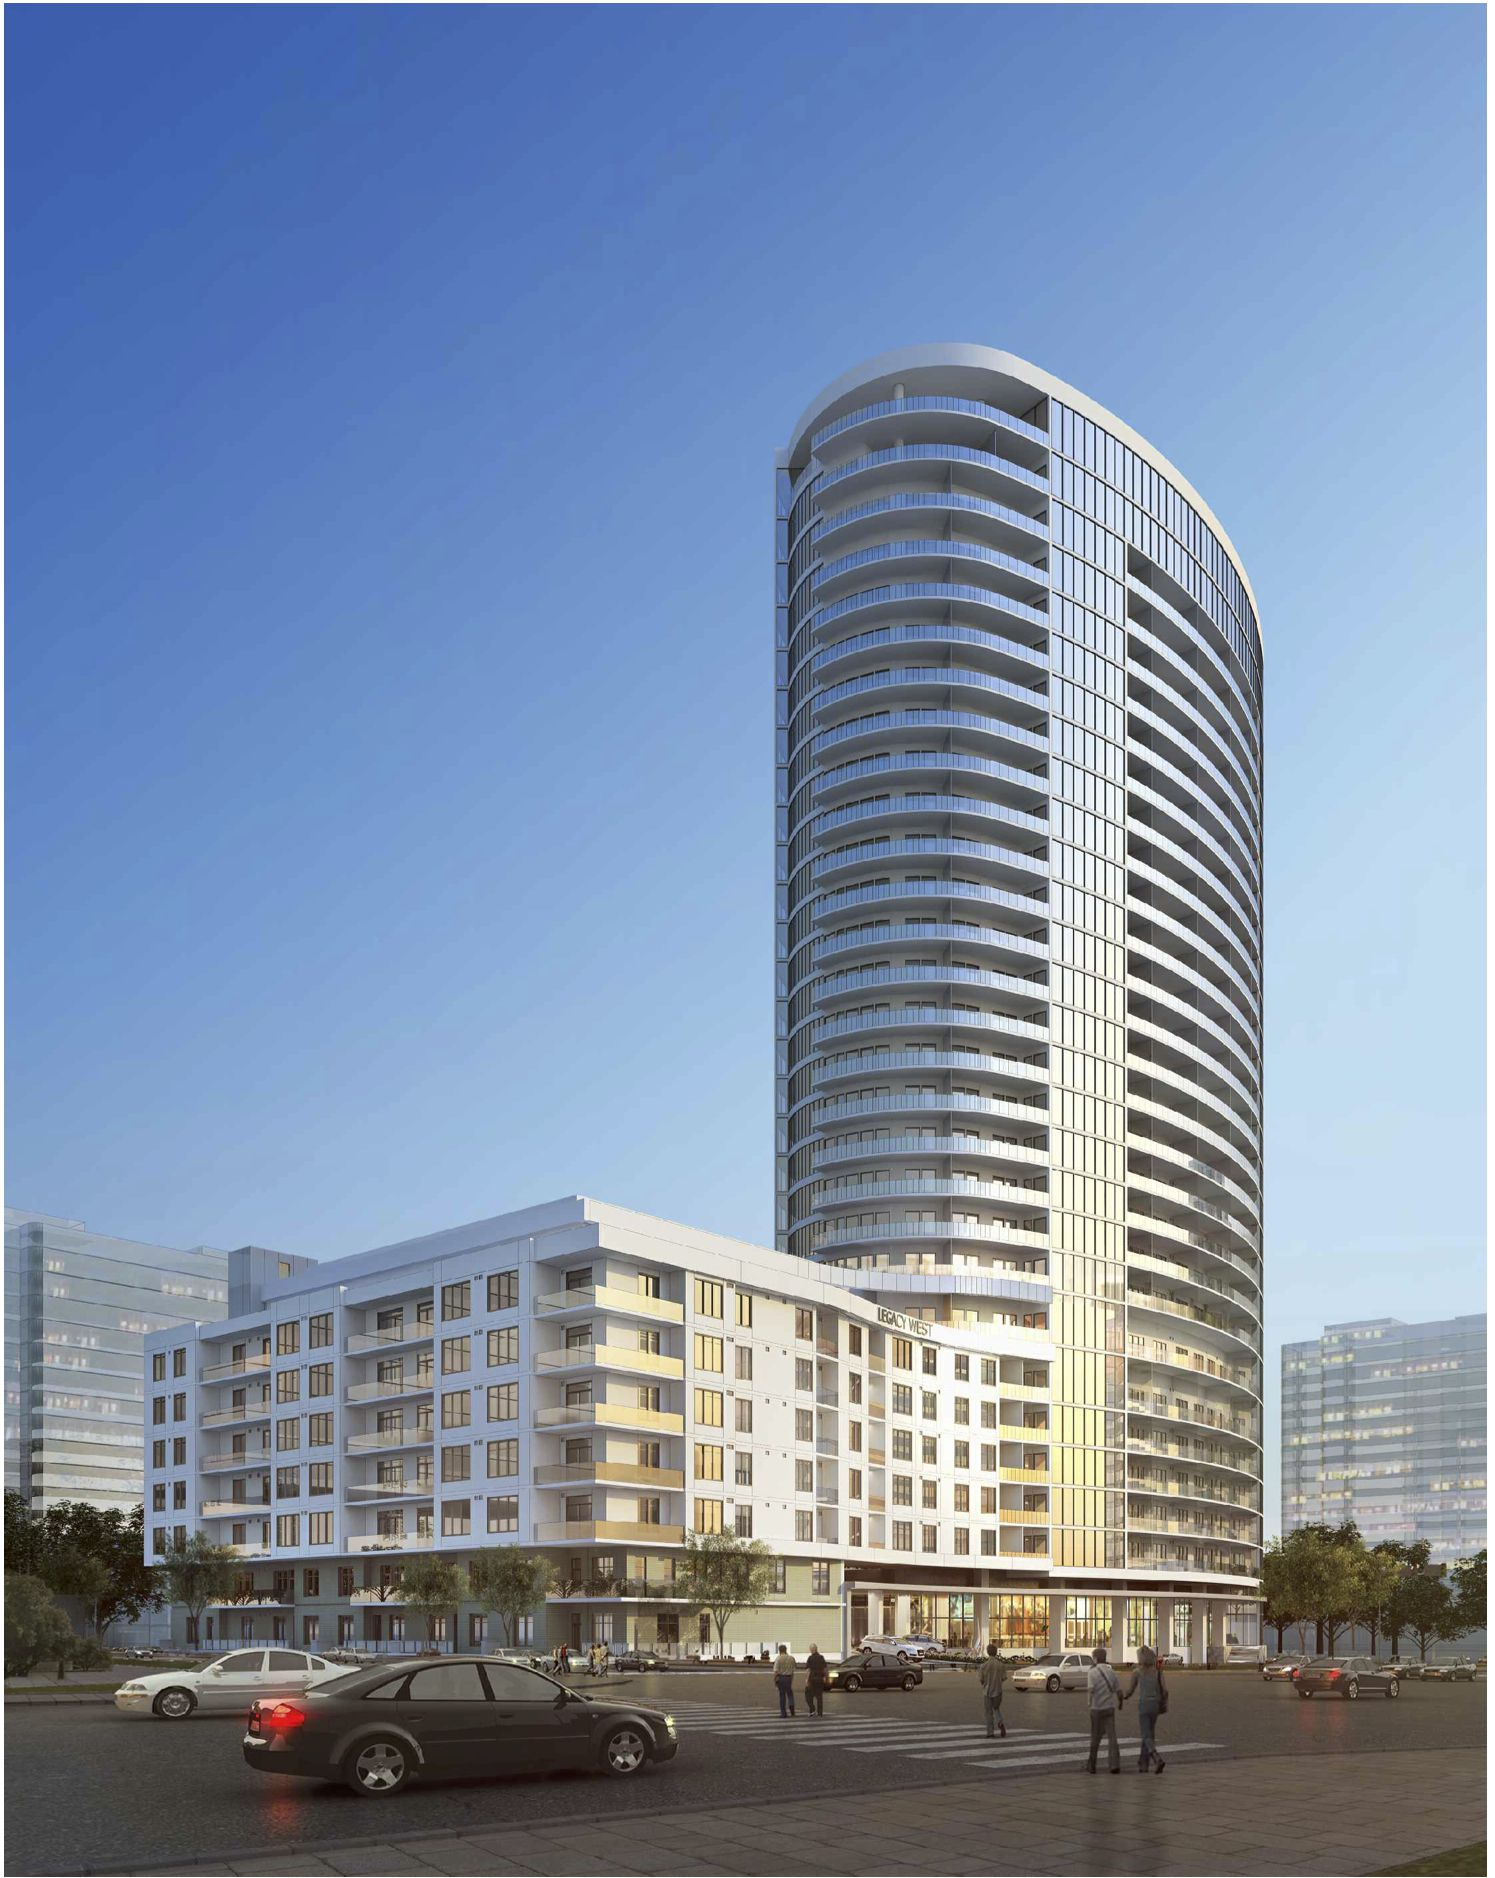 The $100 million, 29-story LVL29 apartment high-rise is being built near the Dallas North Tollway and S.H. 121.